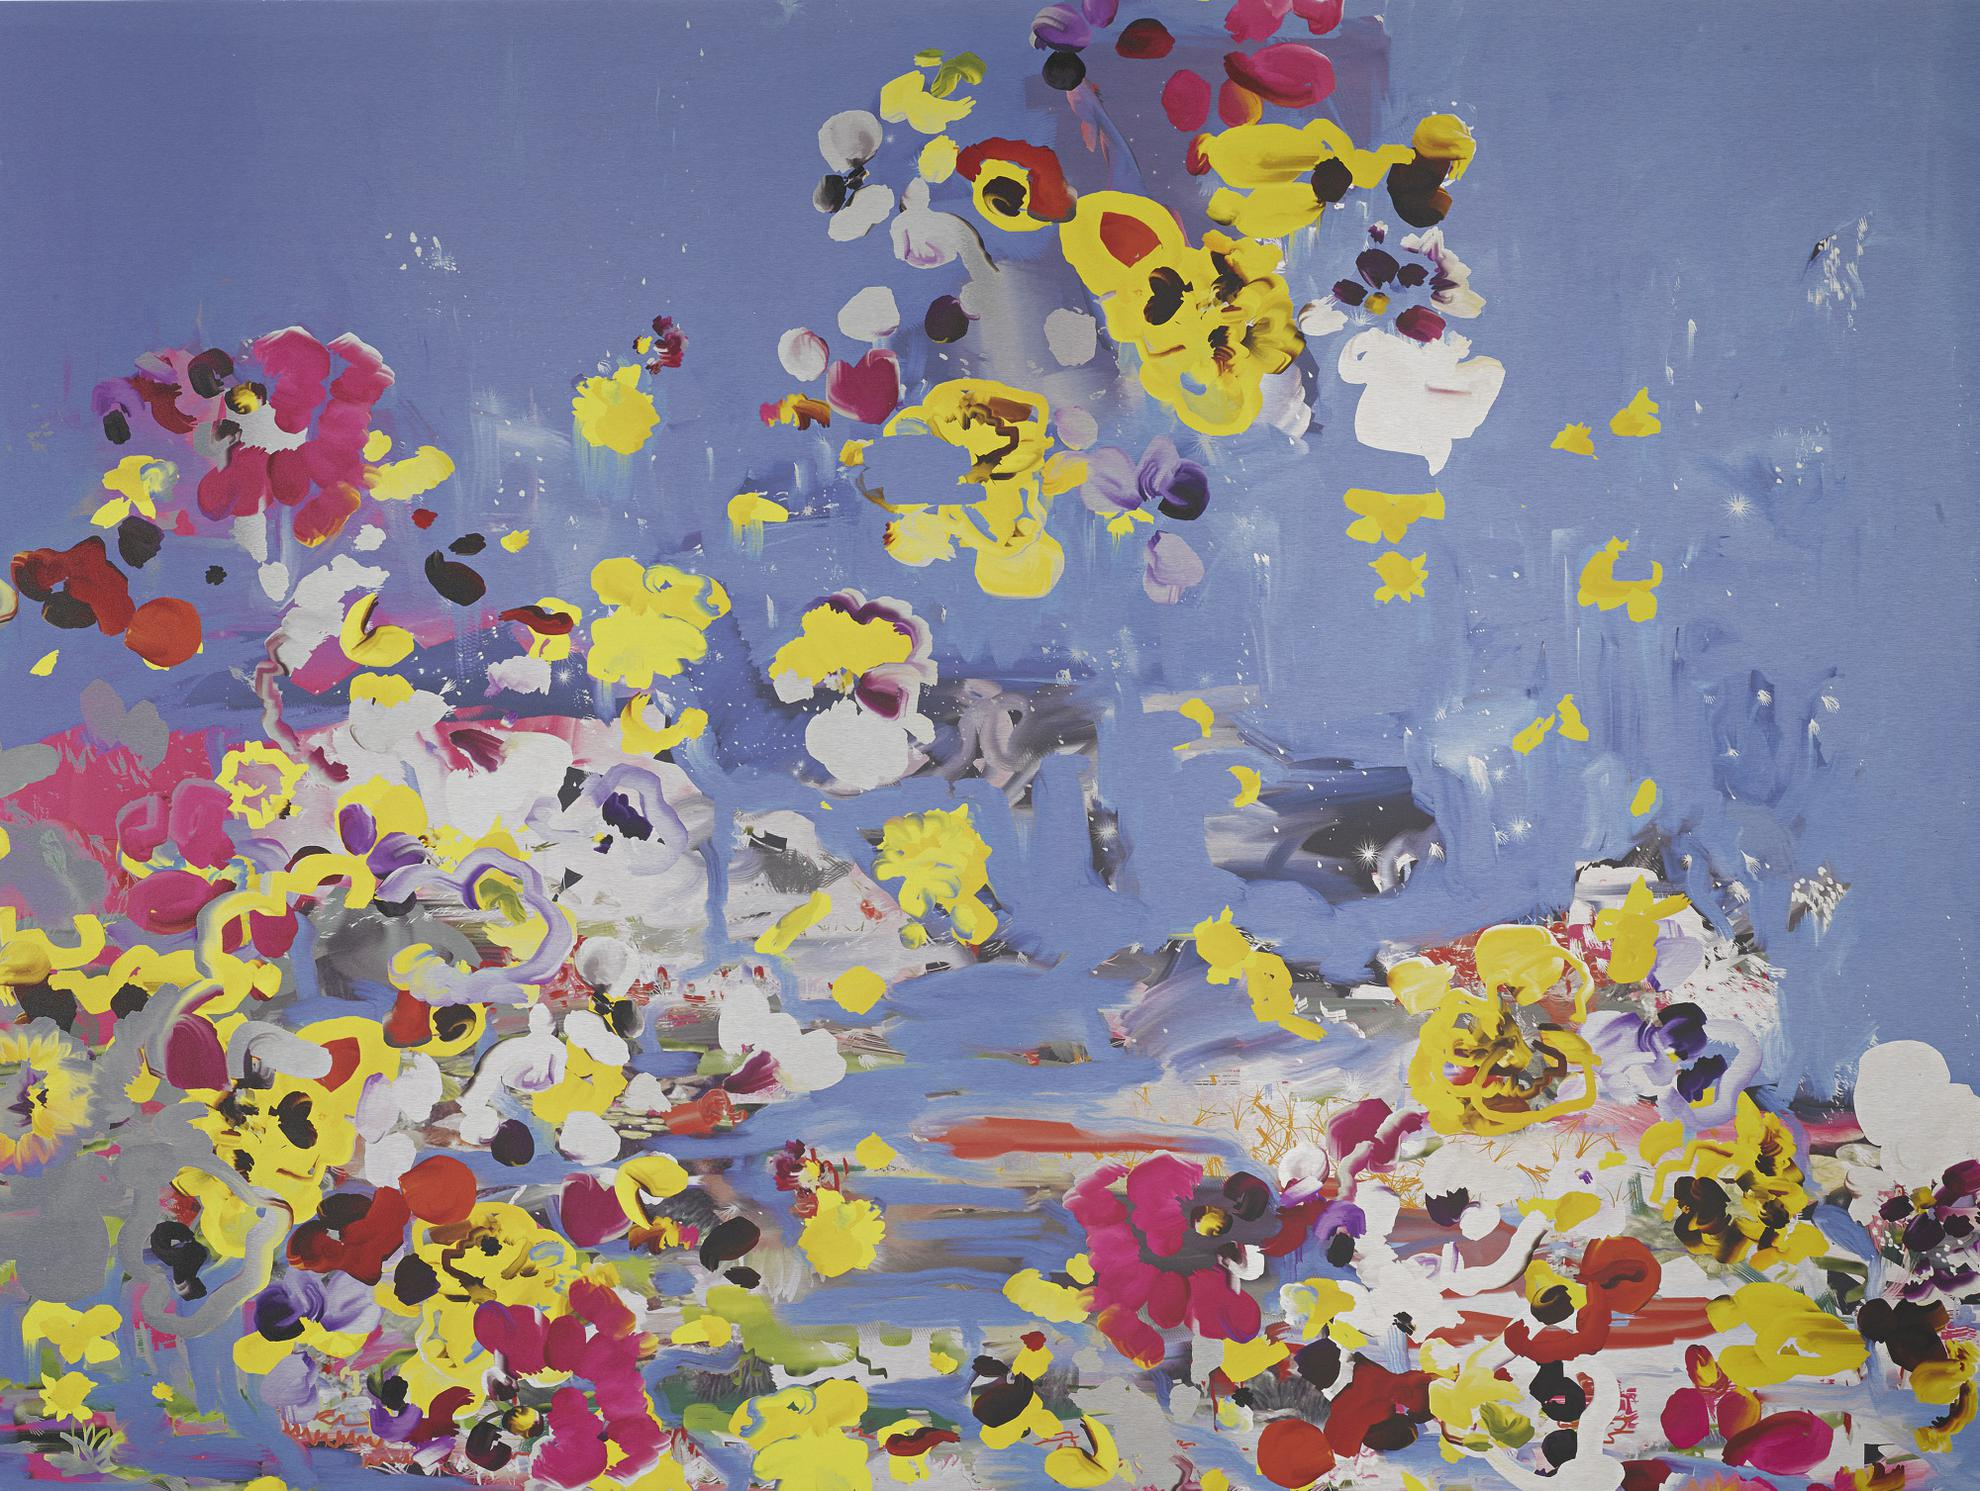 Petra Cortright-R_Sept.Psd #1-2013